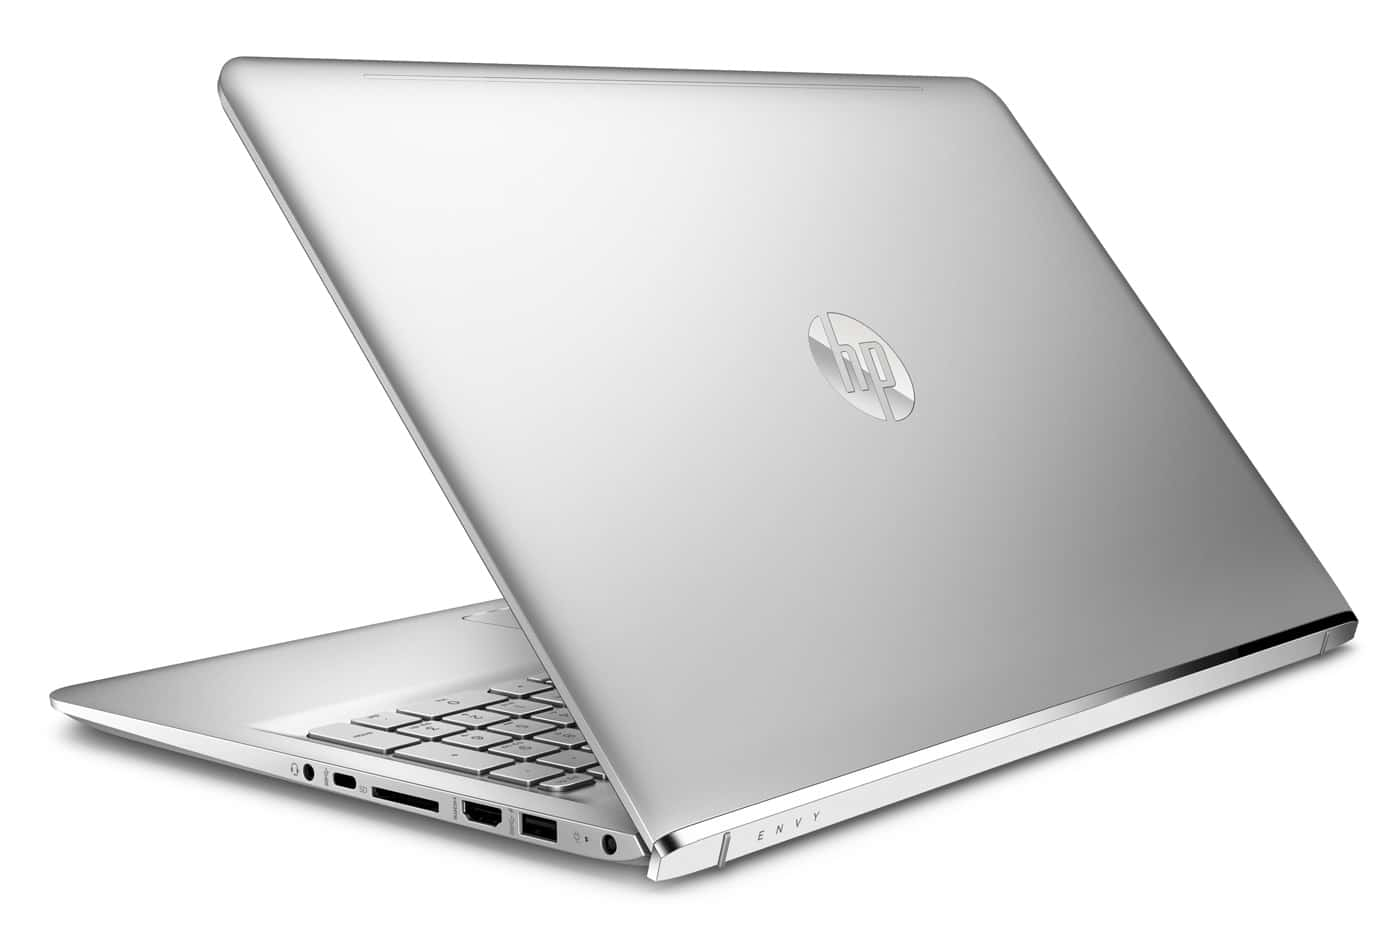 HP Envy 15-as116nf, ultrabook 15 pouces léger IPS Kaby i7 SSD+1To promo 929€